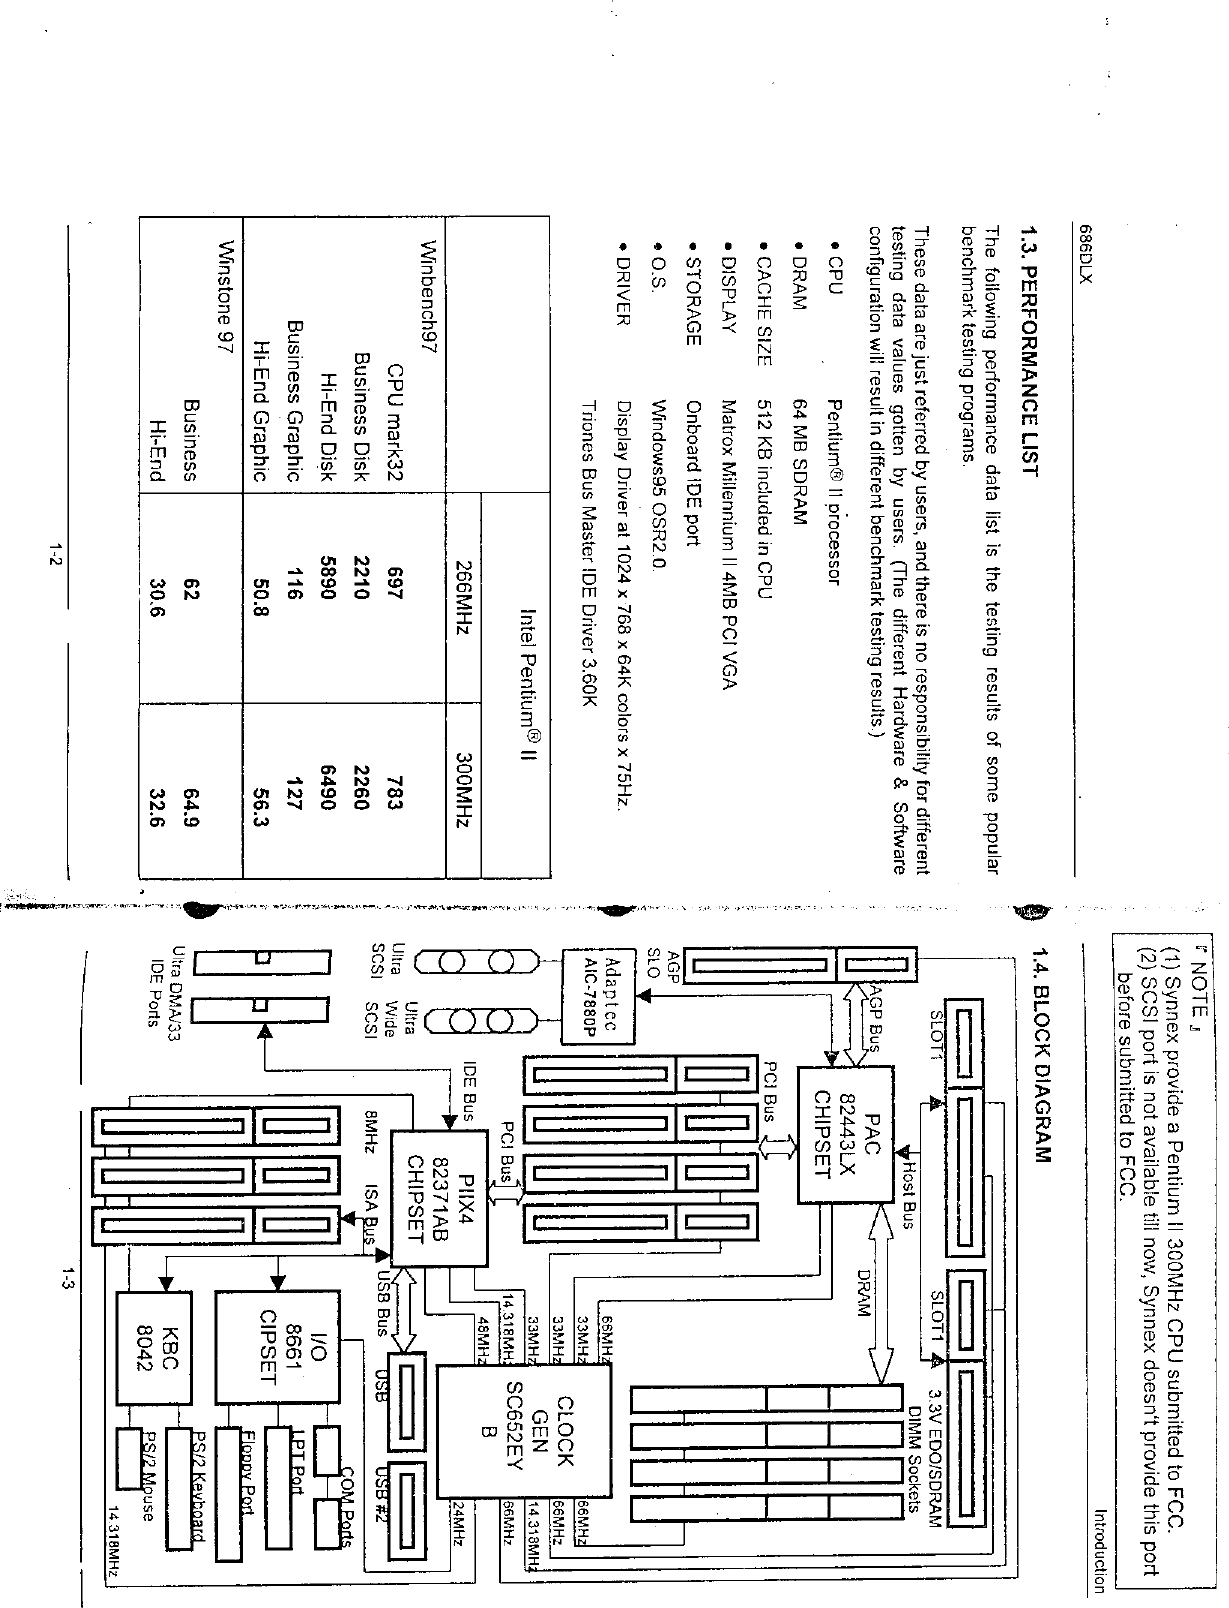 Synnex Technology Mitacserver 300 Mhz Pentium Ii Computer User 3 Block Diagram 8